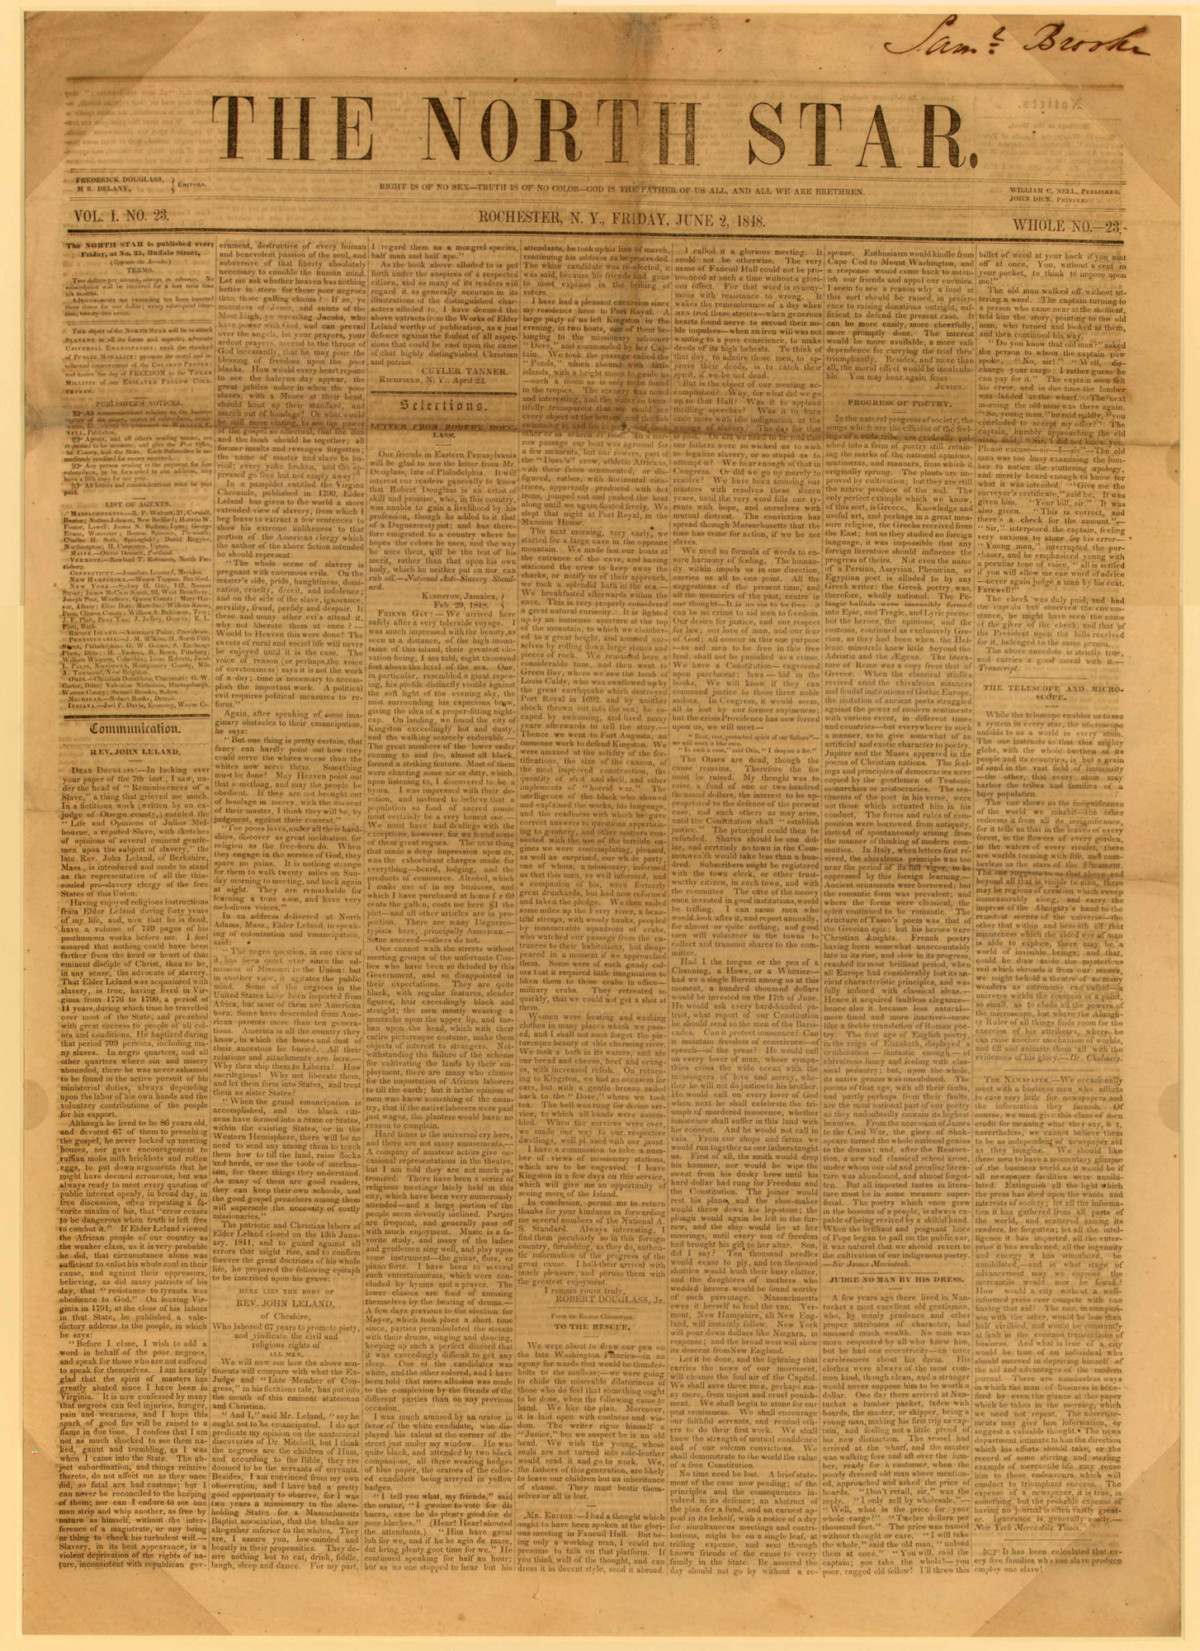 <p>Front page of <em>The North Star</em>, June 2, 1848</p>